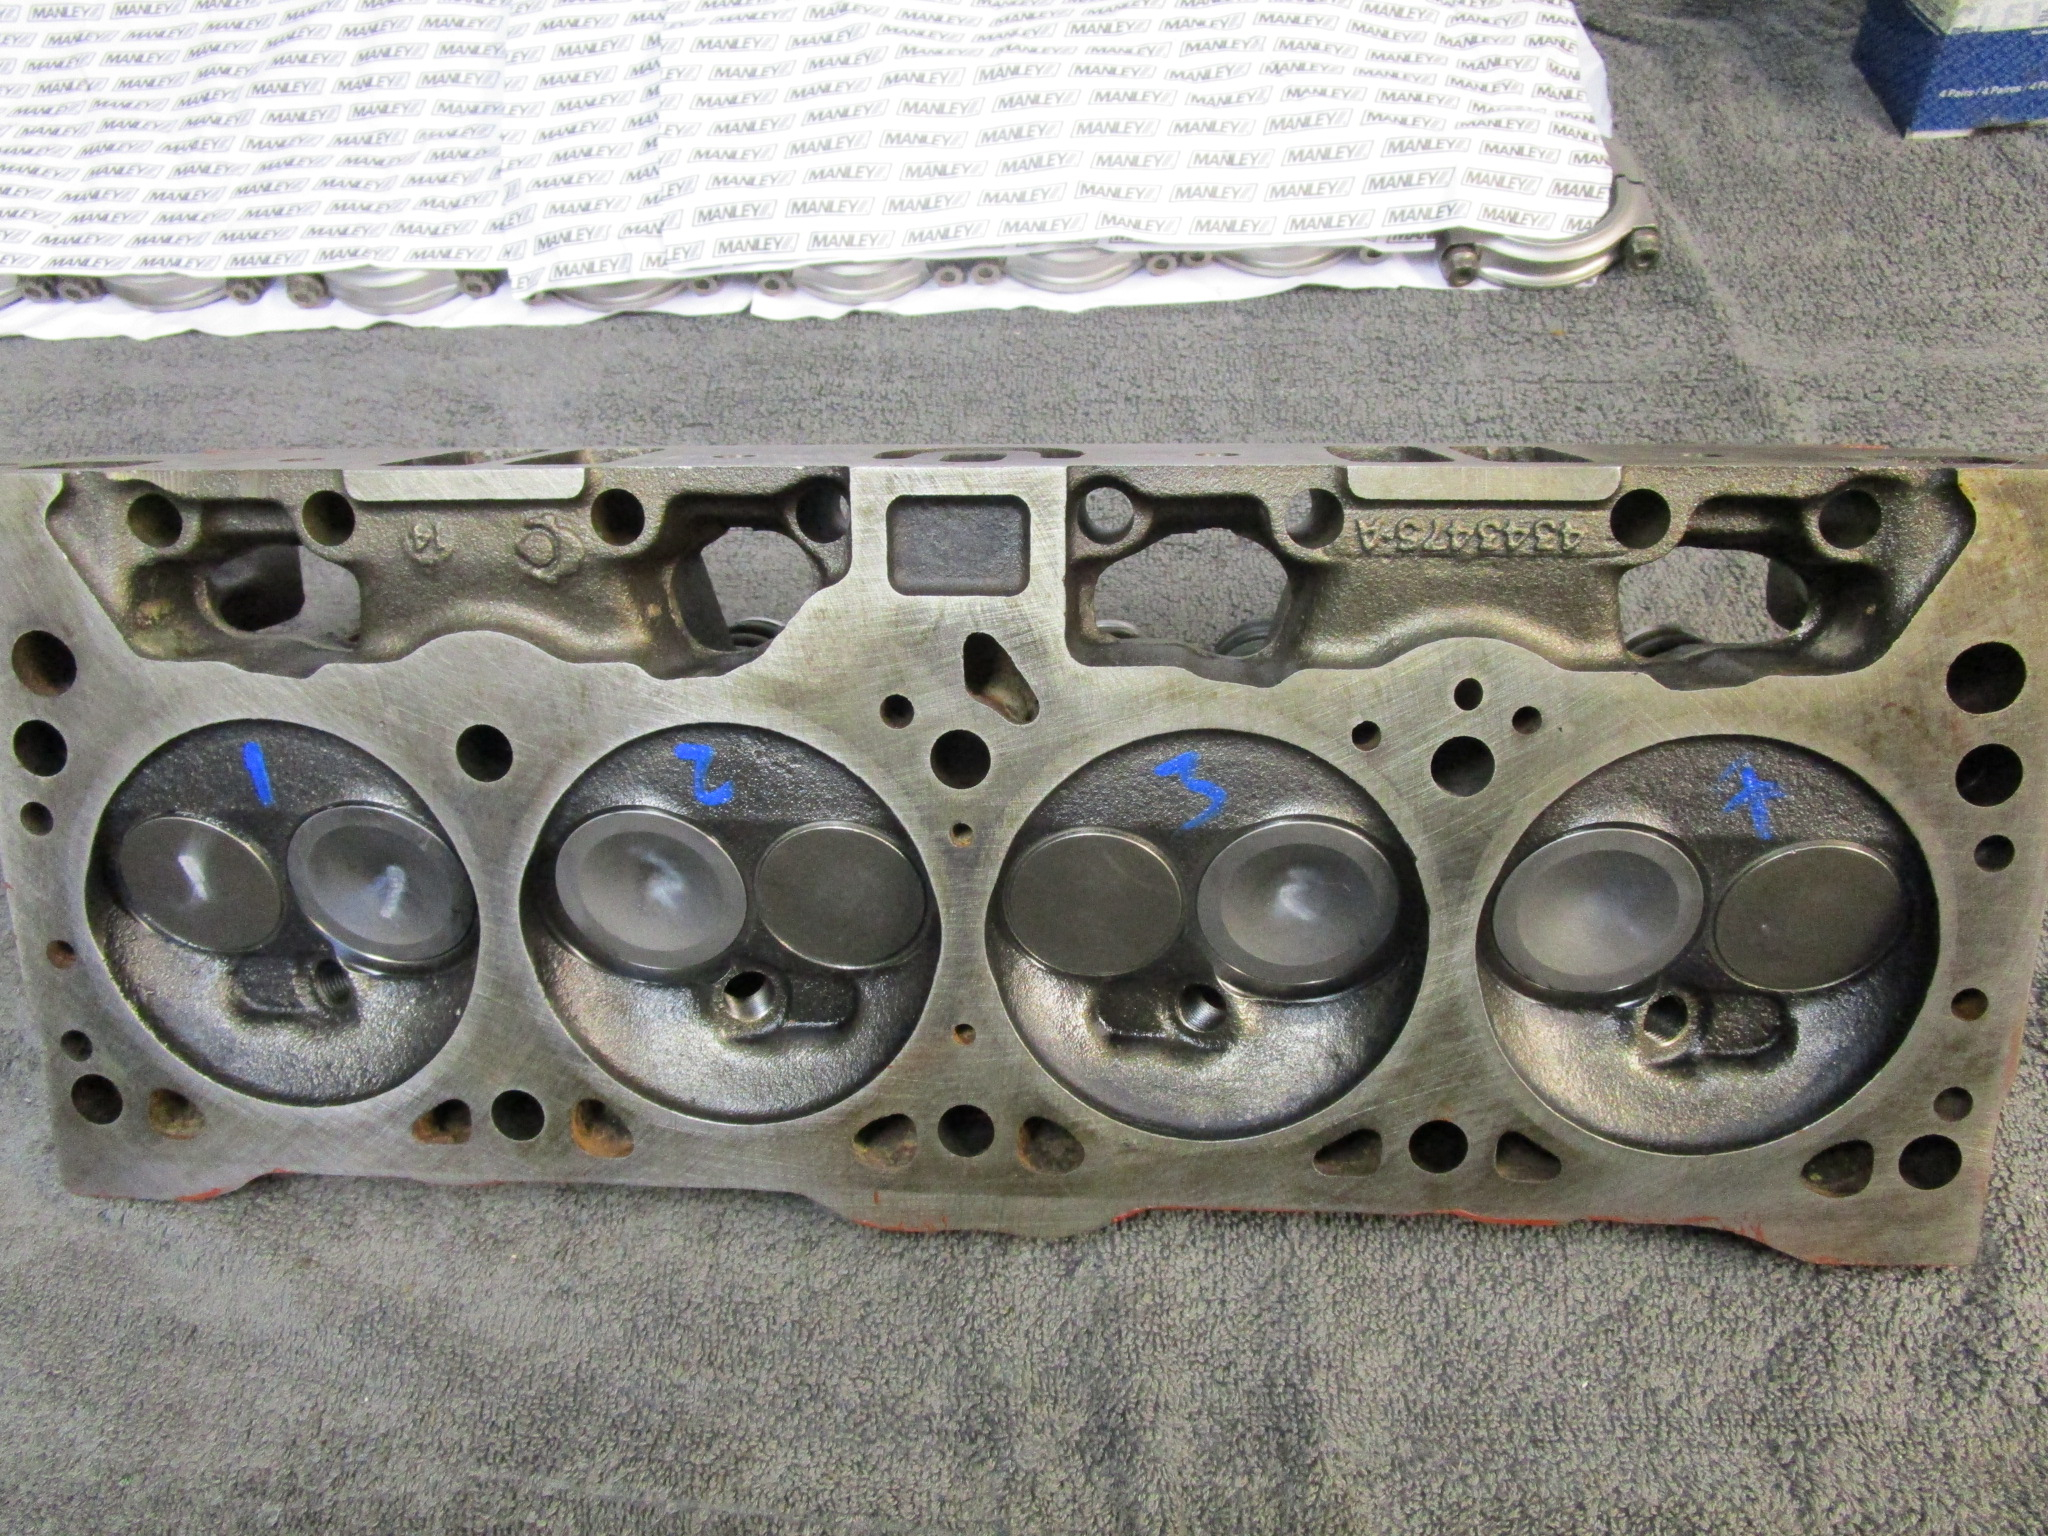 New intake valves